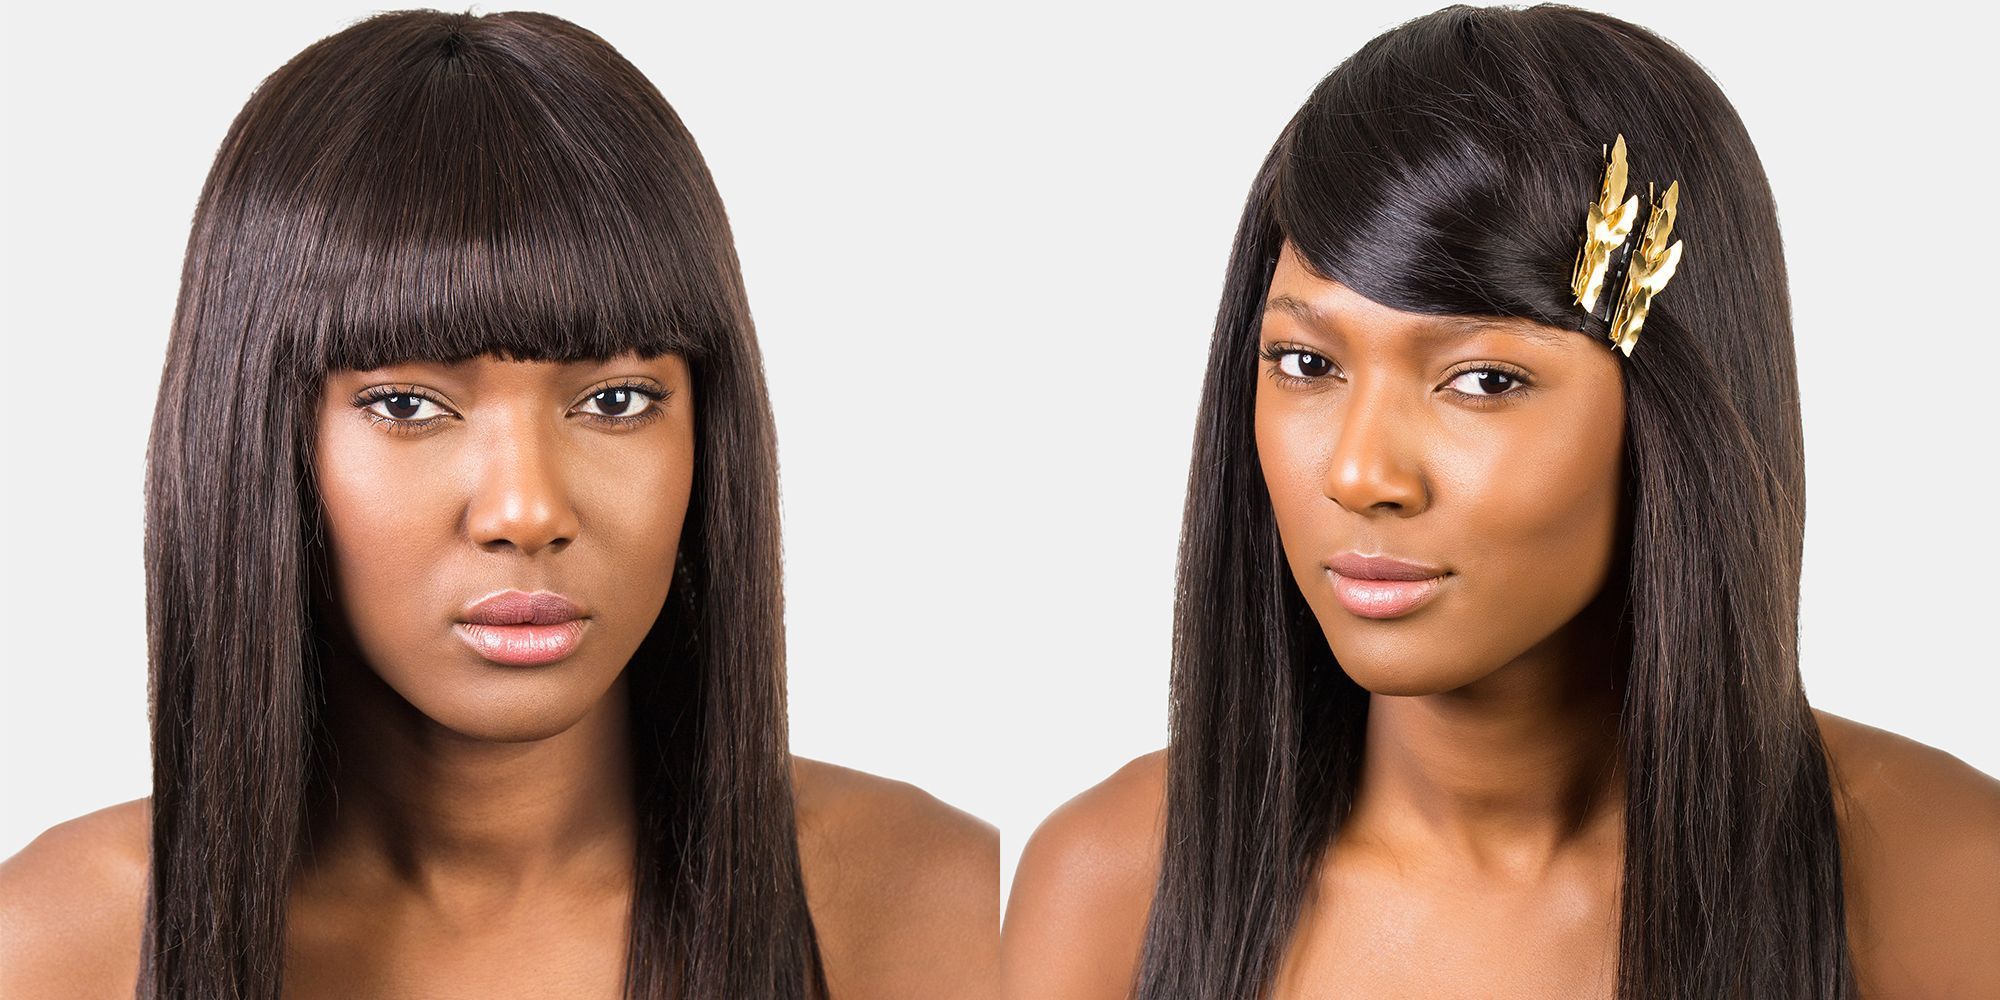 Cute Hairstyles To Hide Bangs For Round Faces How To Style Bangs 5 Hairstyles To Keep Your Bangs Ou In 2020 How To Style Bangs Bangs For Round Face Cute Hairstyles